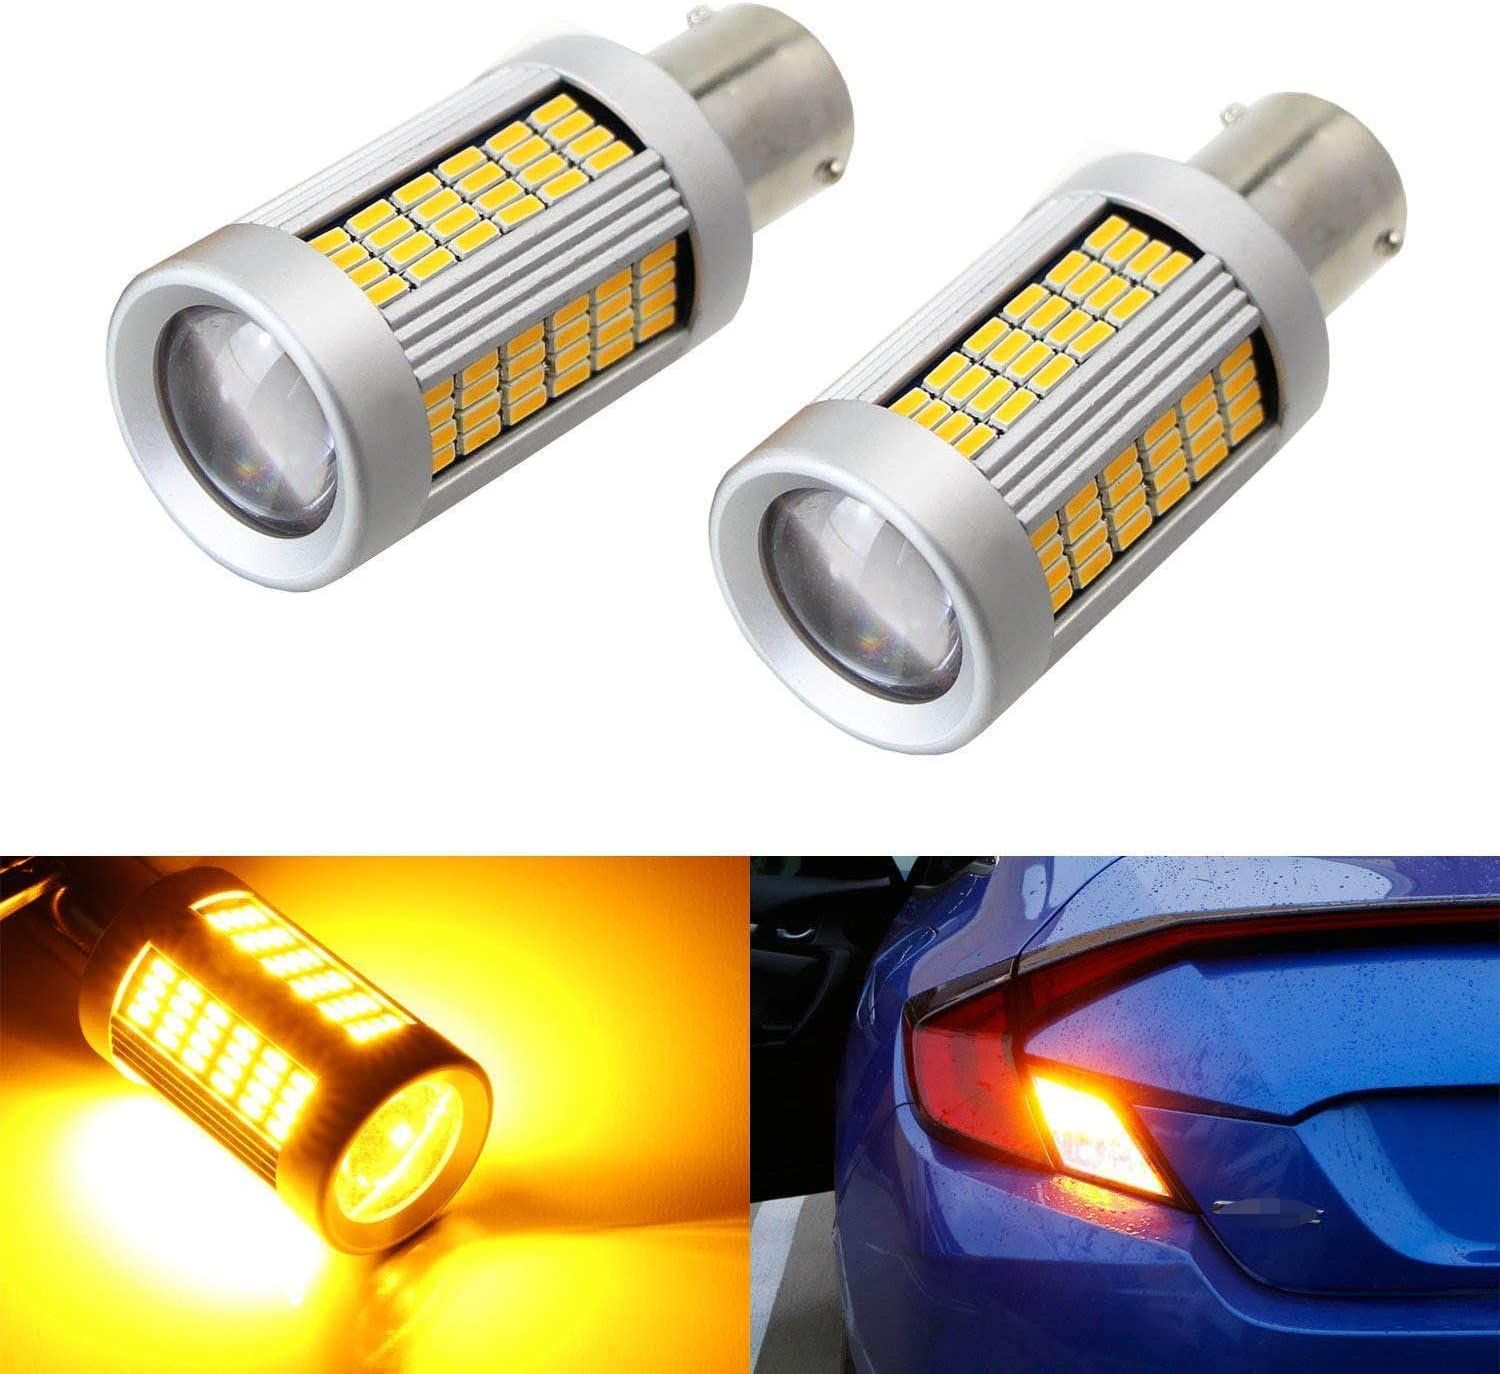 iJDMTOY 2 No Hyper Flash 25W Credence High 1156 CAN-bus Power Amber Spring new work LED